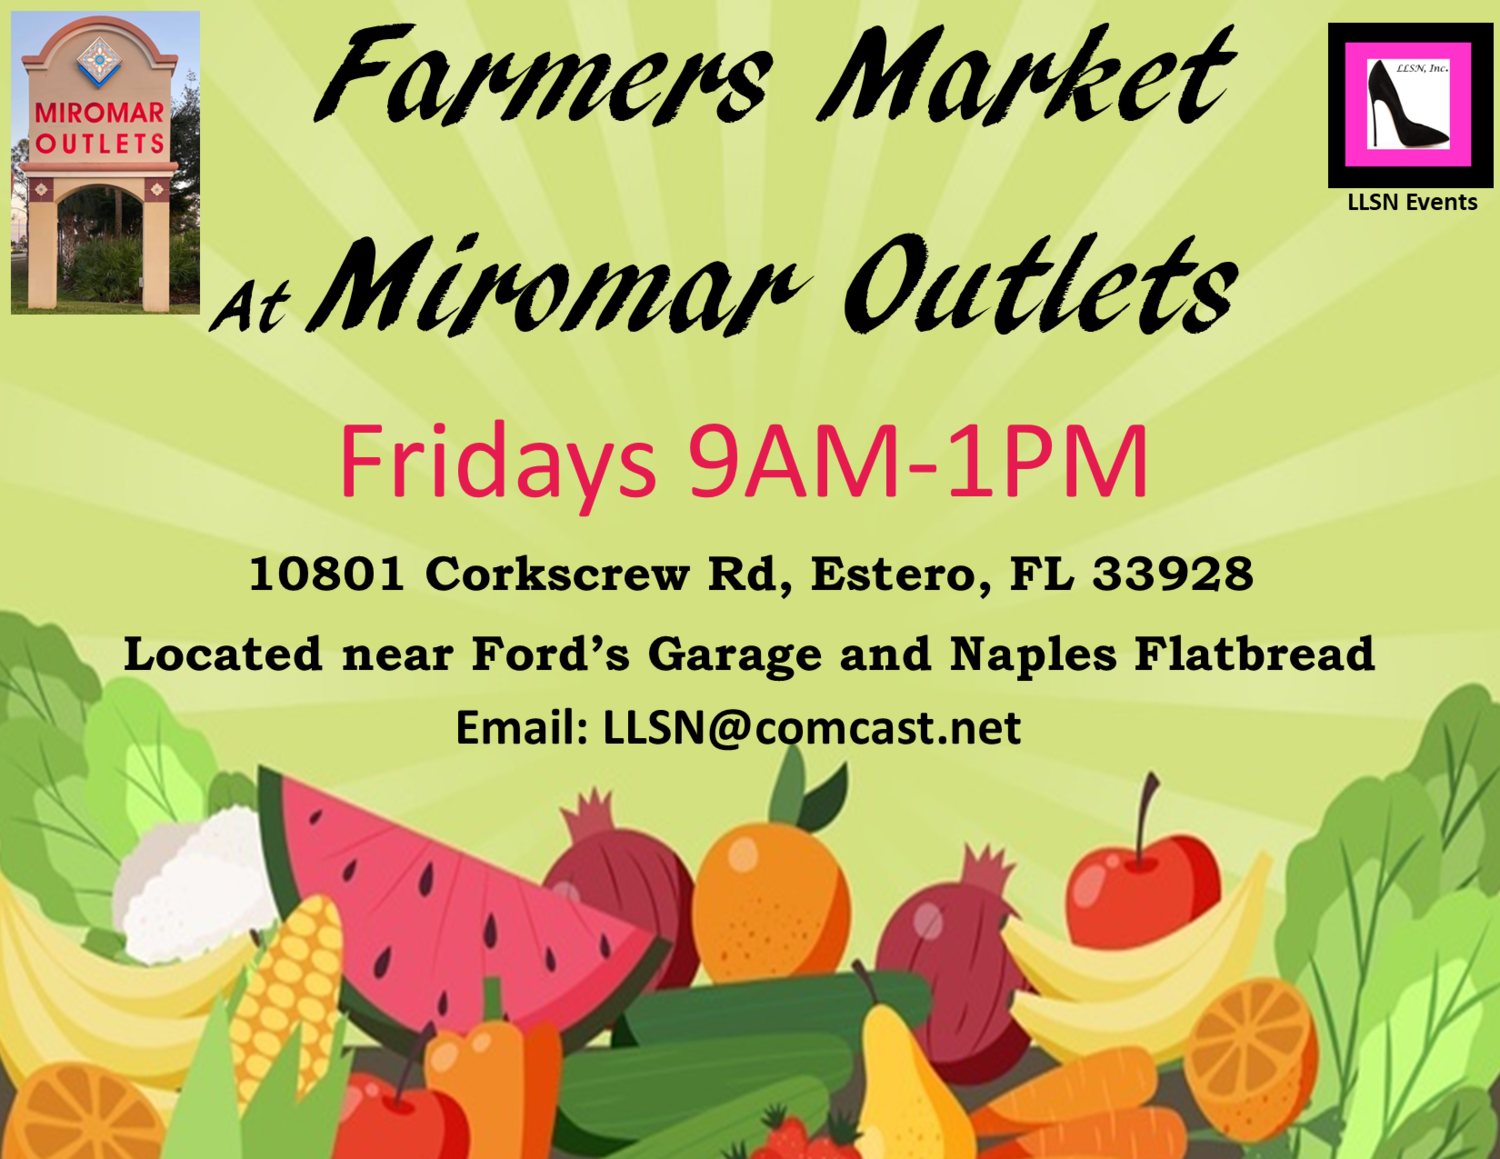 Only Approved Vendors Can Use This Payment Method For The Farmers Market at Miromar Outlets. (5 weeks in October.)